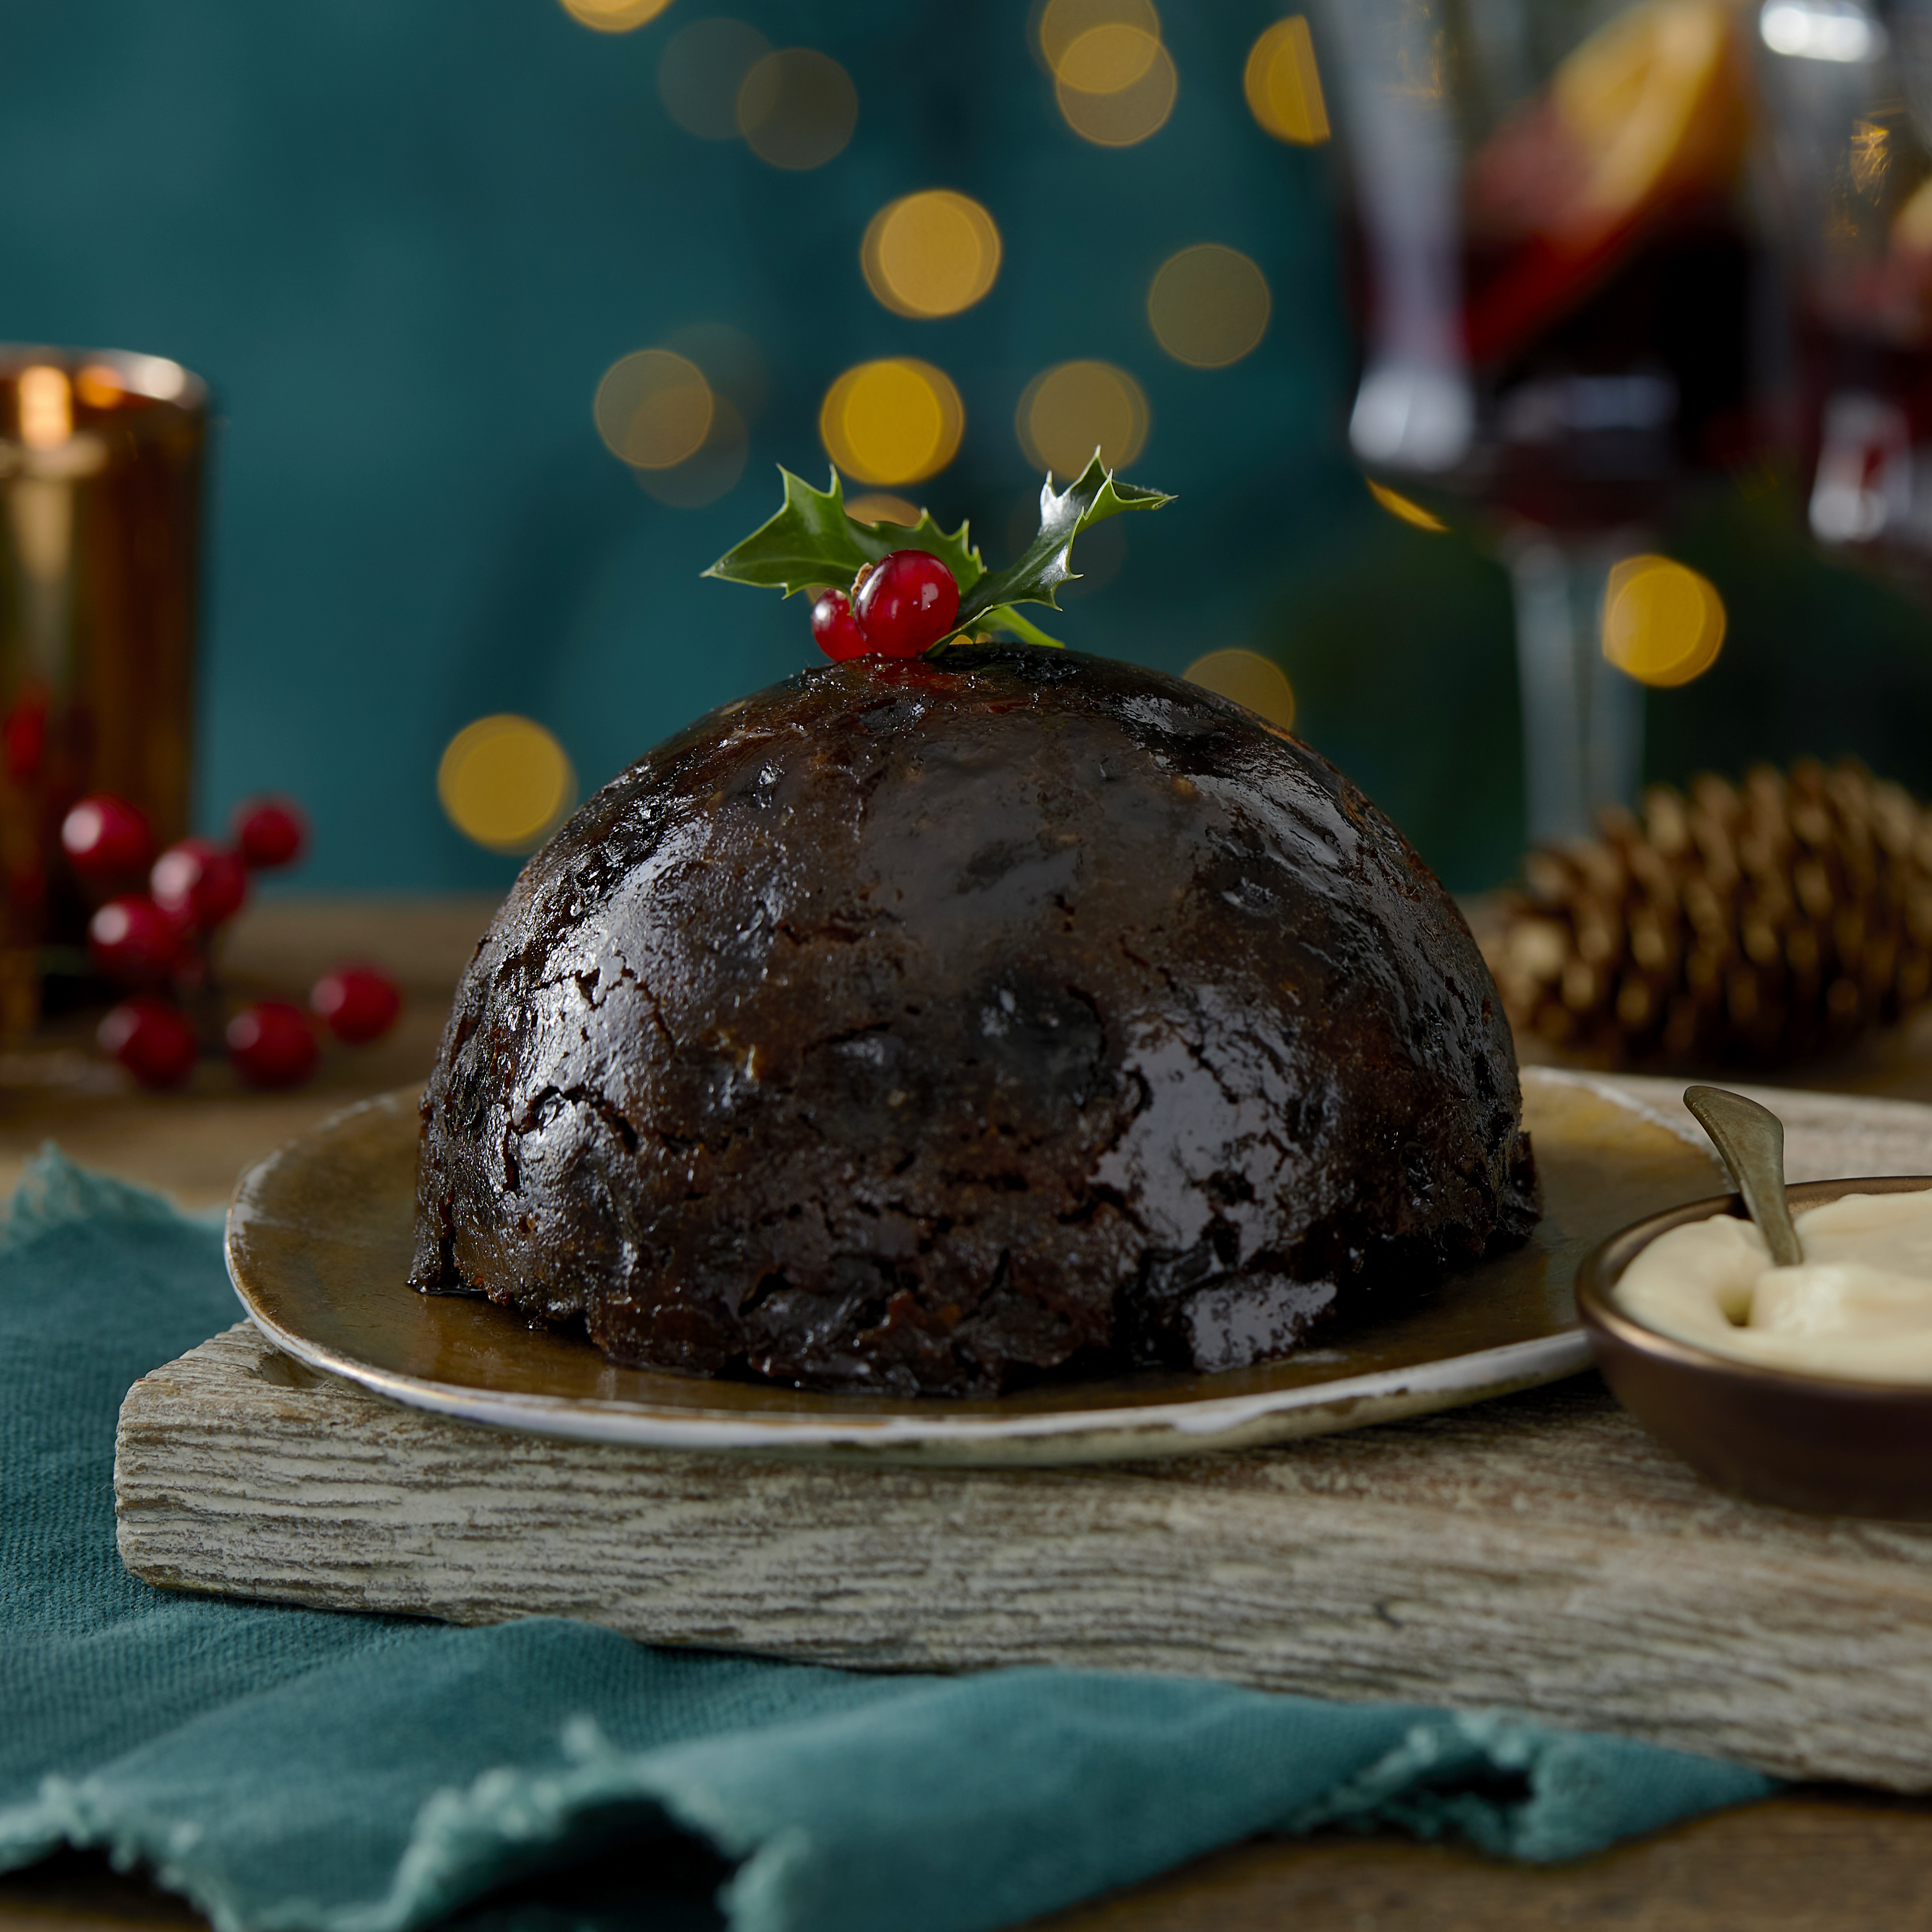 The Best Christmas Pudding from Morrisons is one of their 250 award-winning products